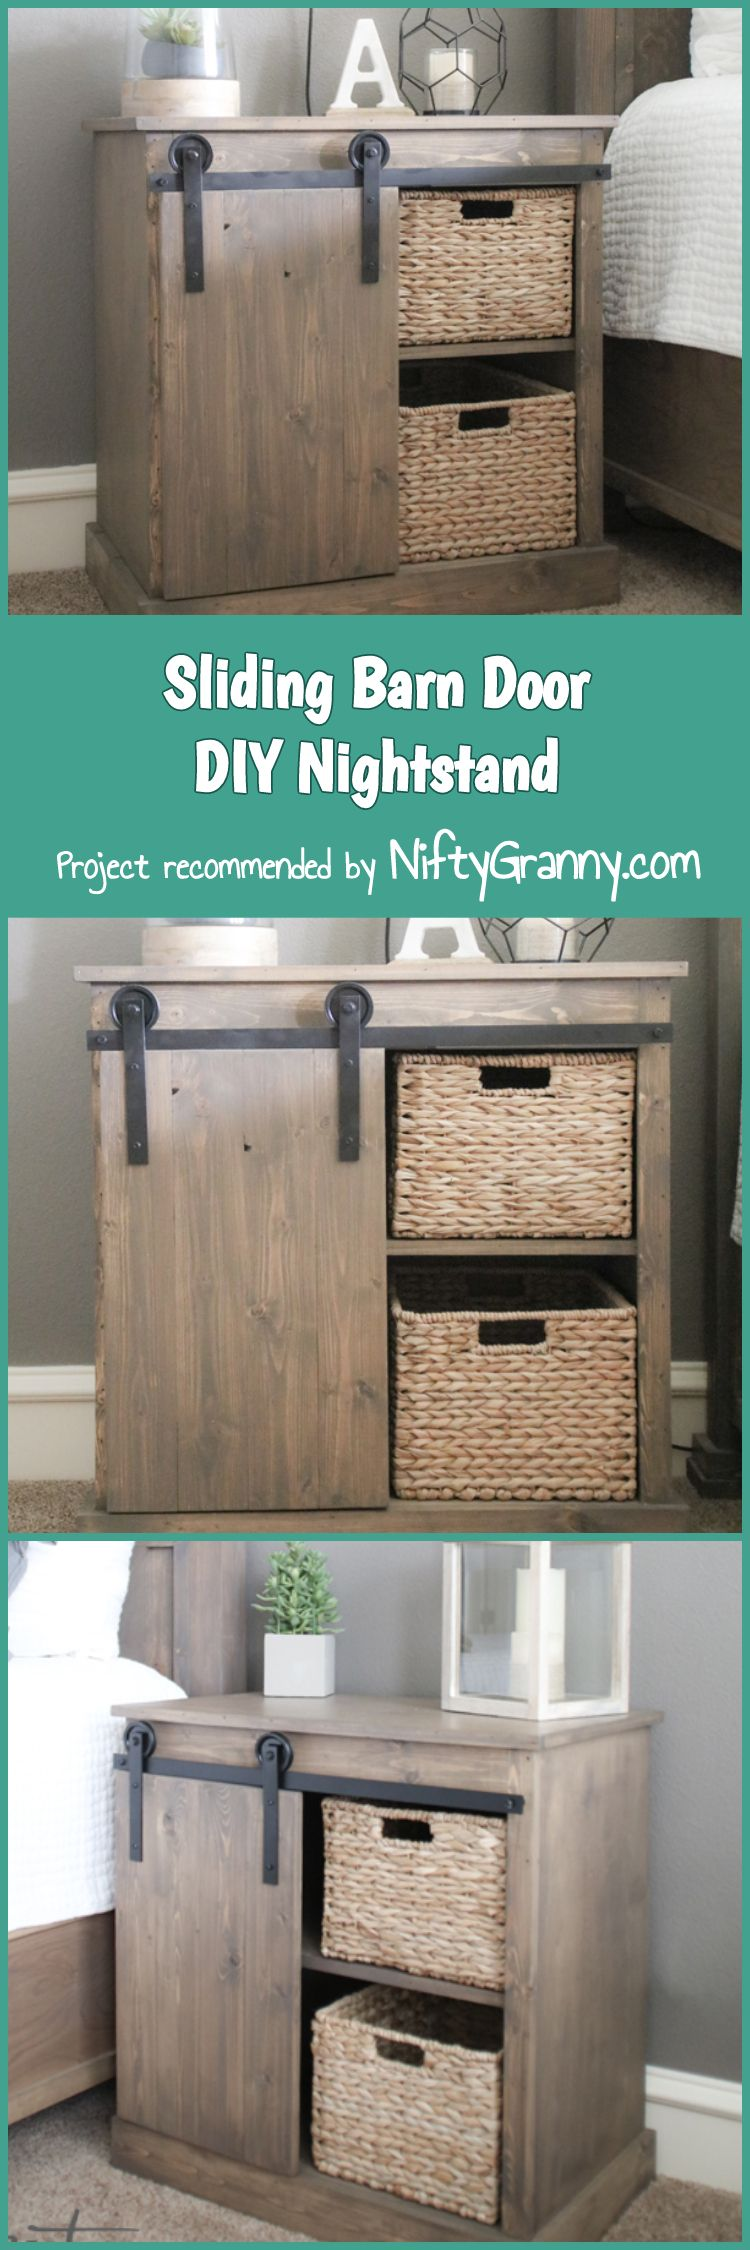 Unusual Bedroom Nightstands Diy Projects Diy How To Pinterest